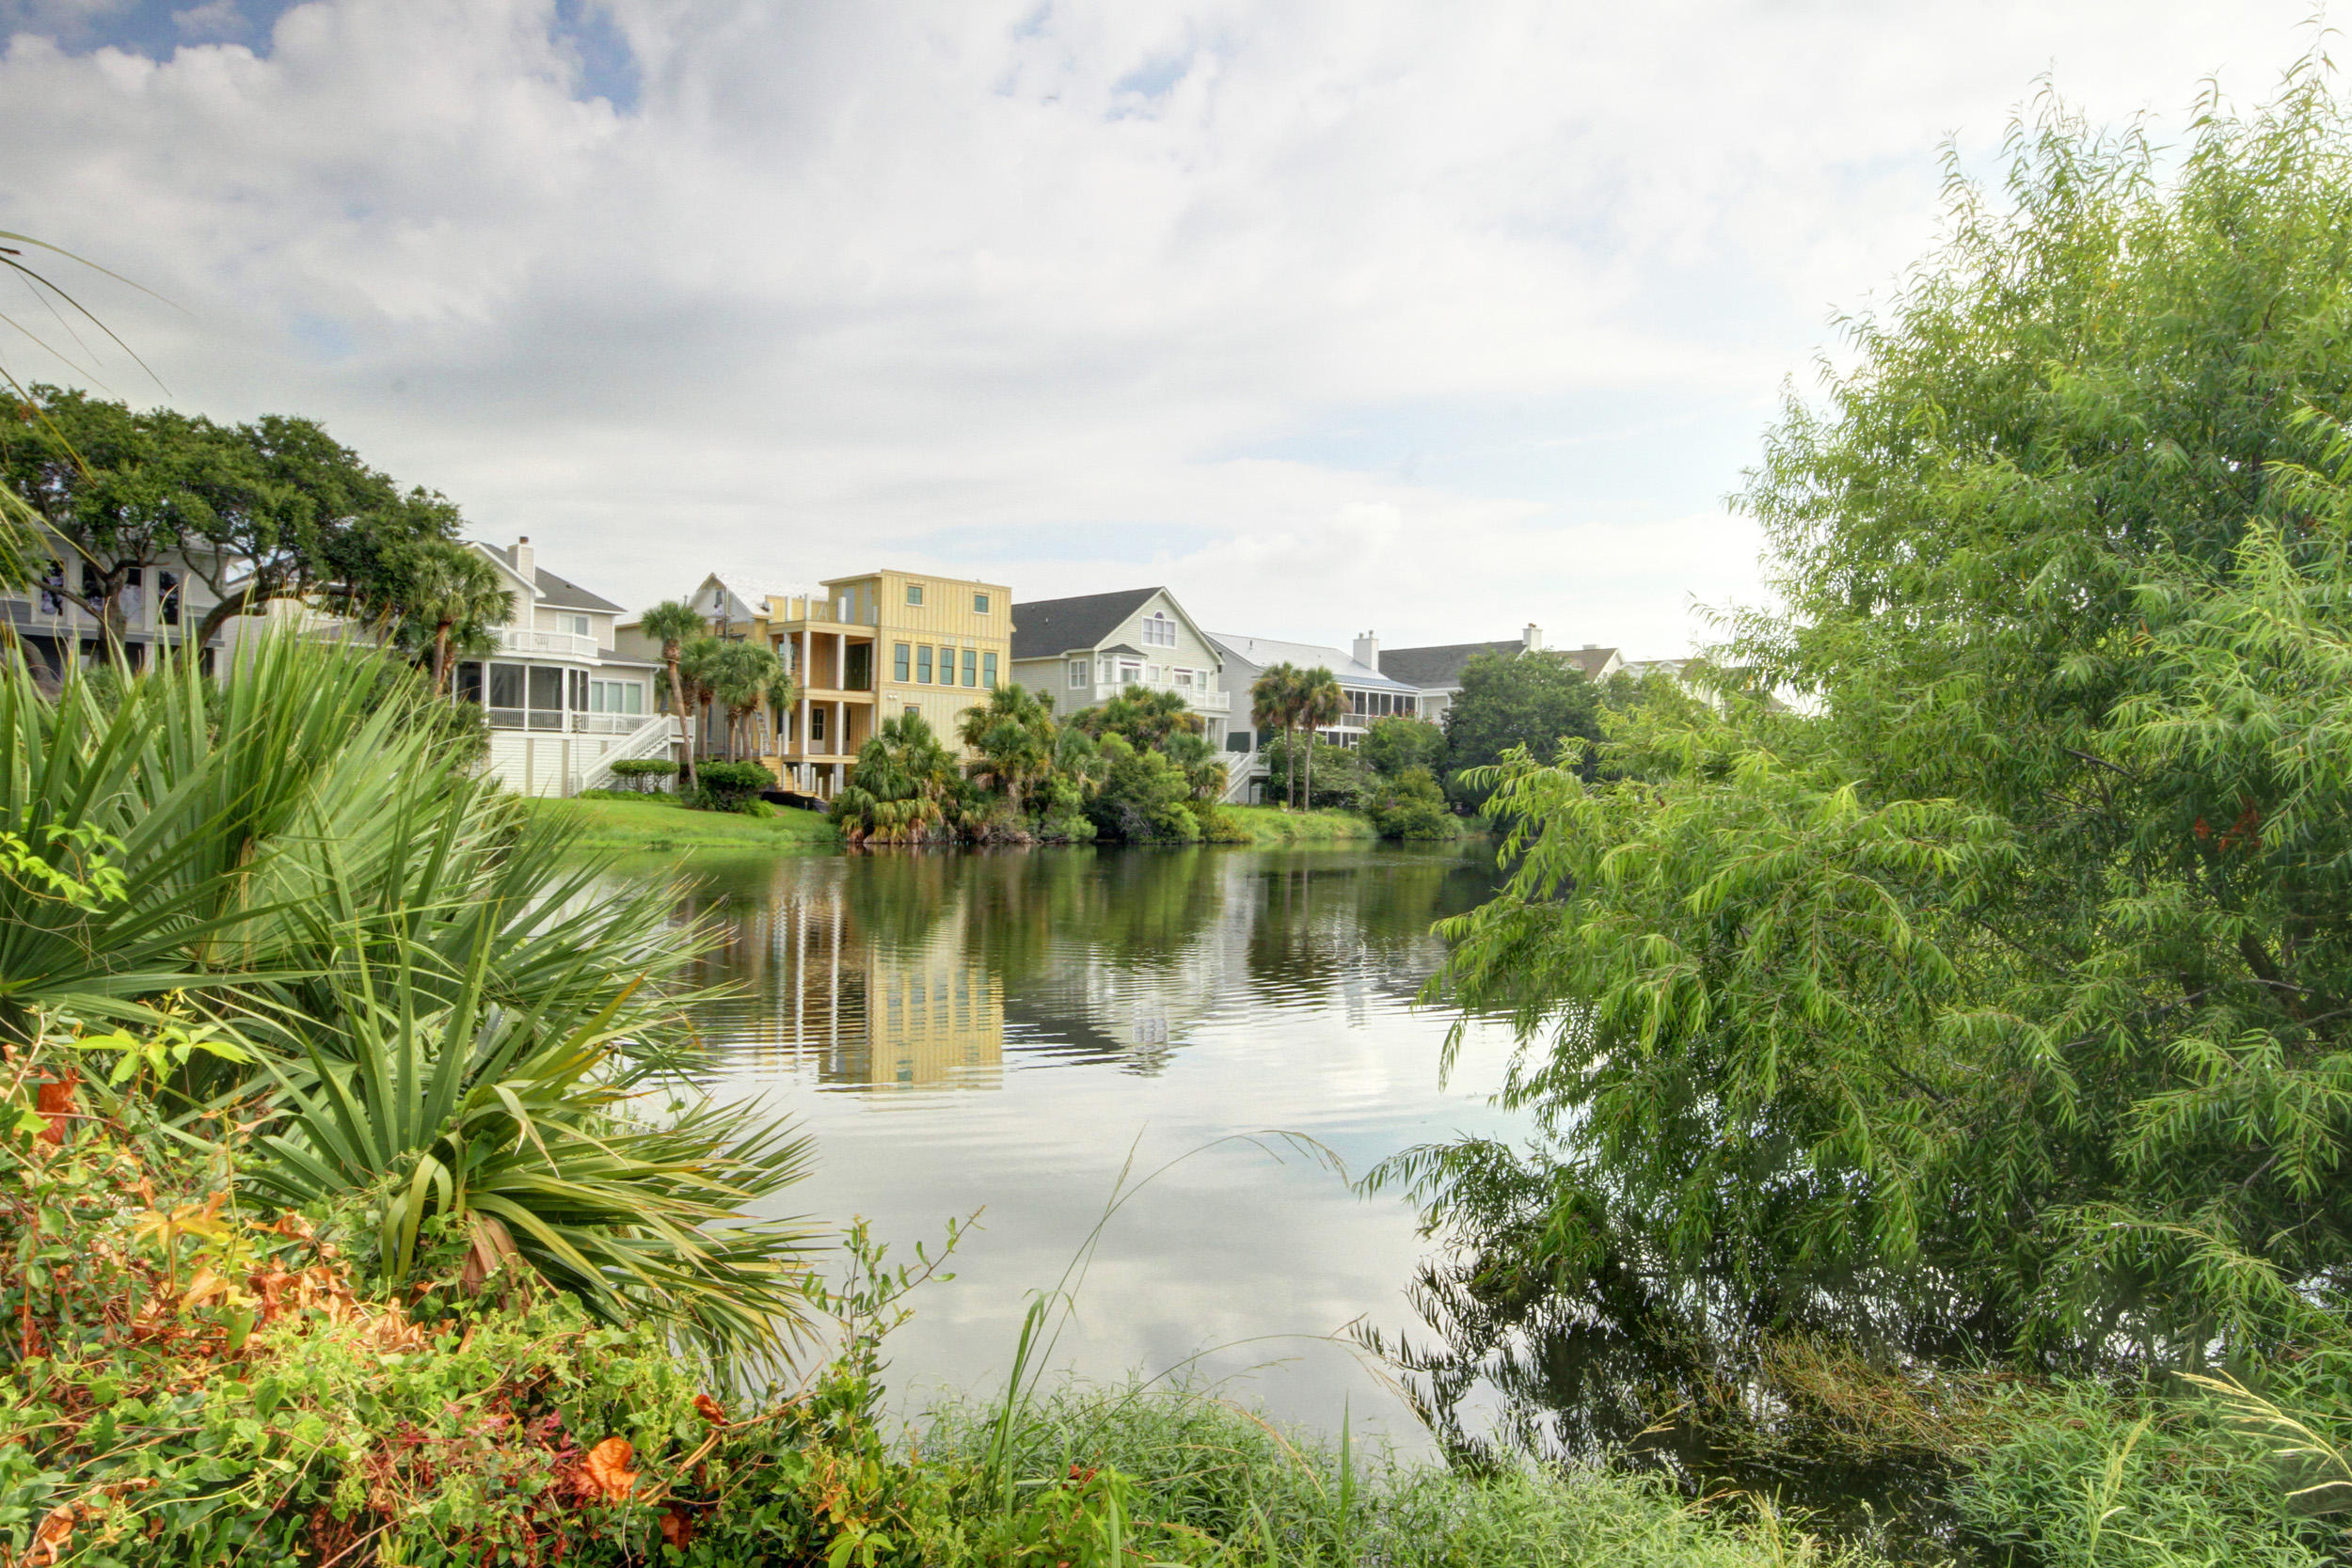 Wild Dunes Homes For Sale - 2 Morgan Pl, Isle of Palms, SC - 26